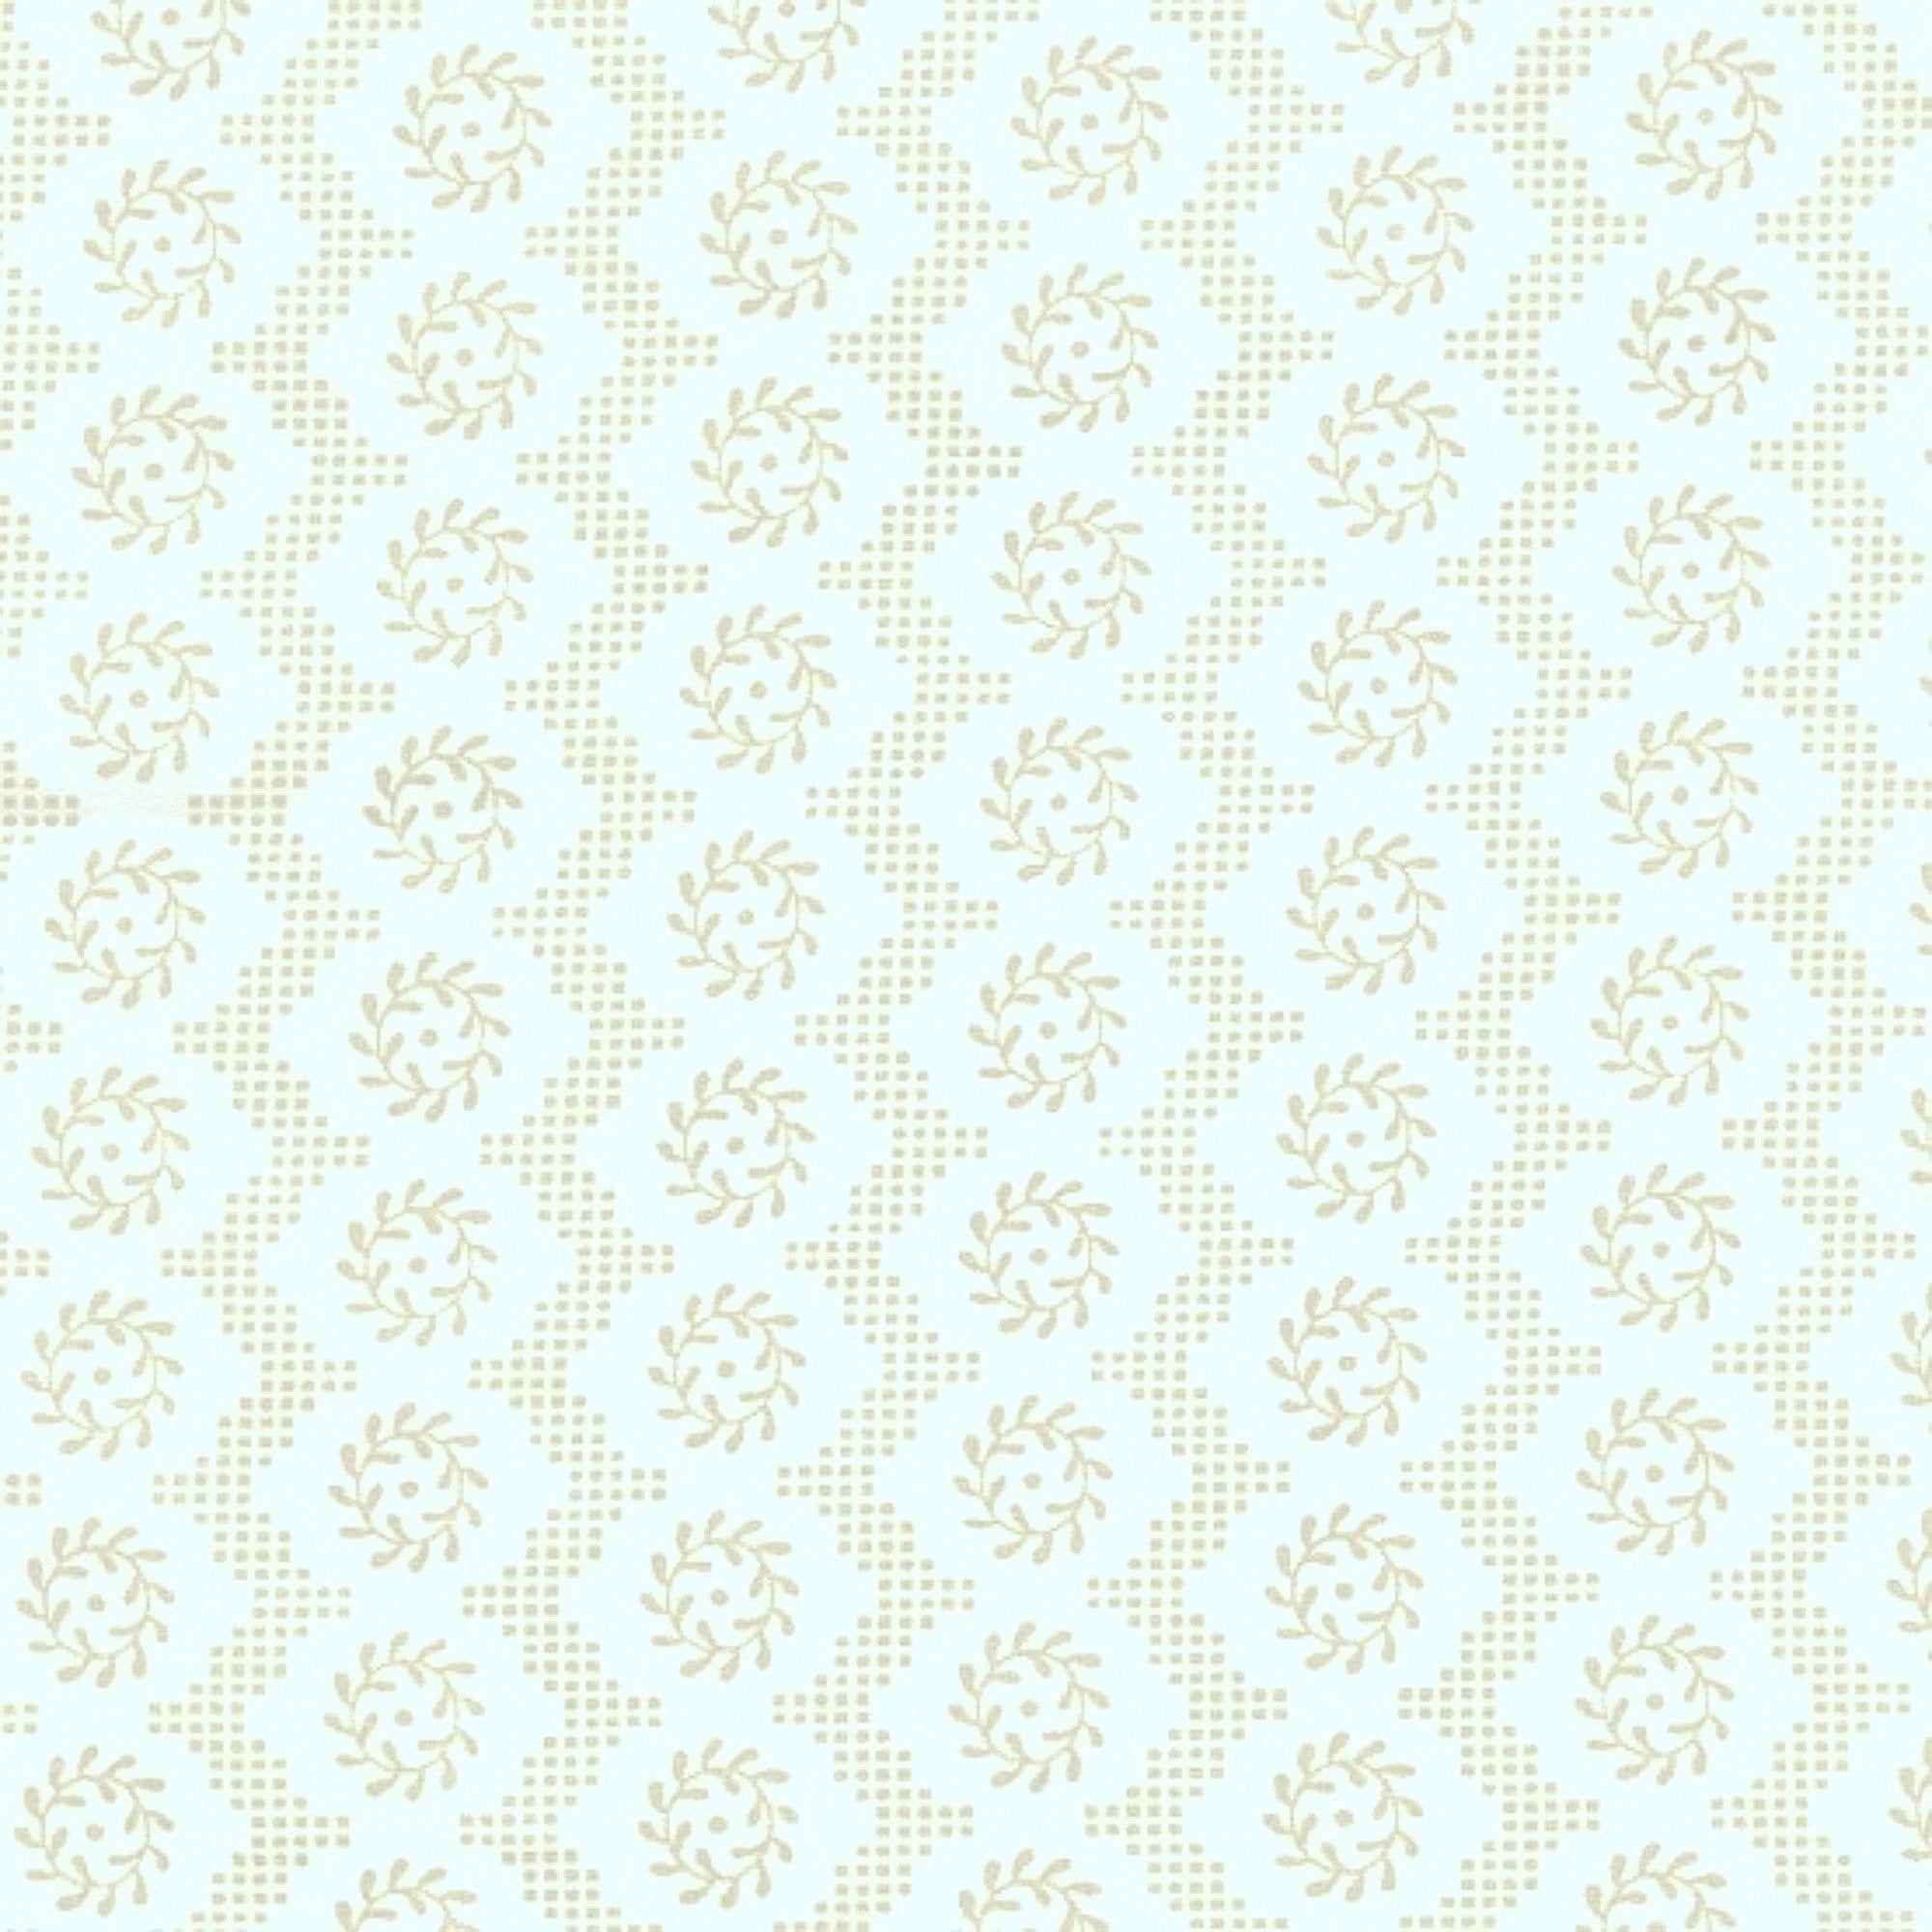 Cotton Percale - Asparagus Violine Fabric